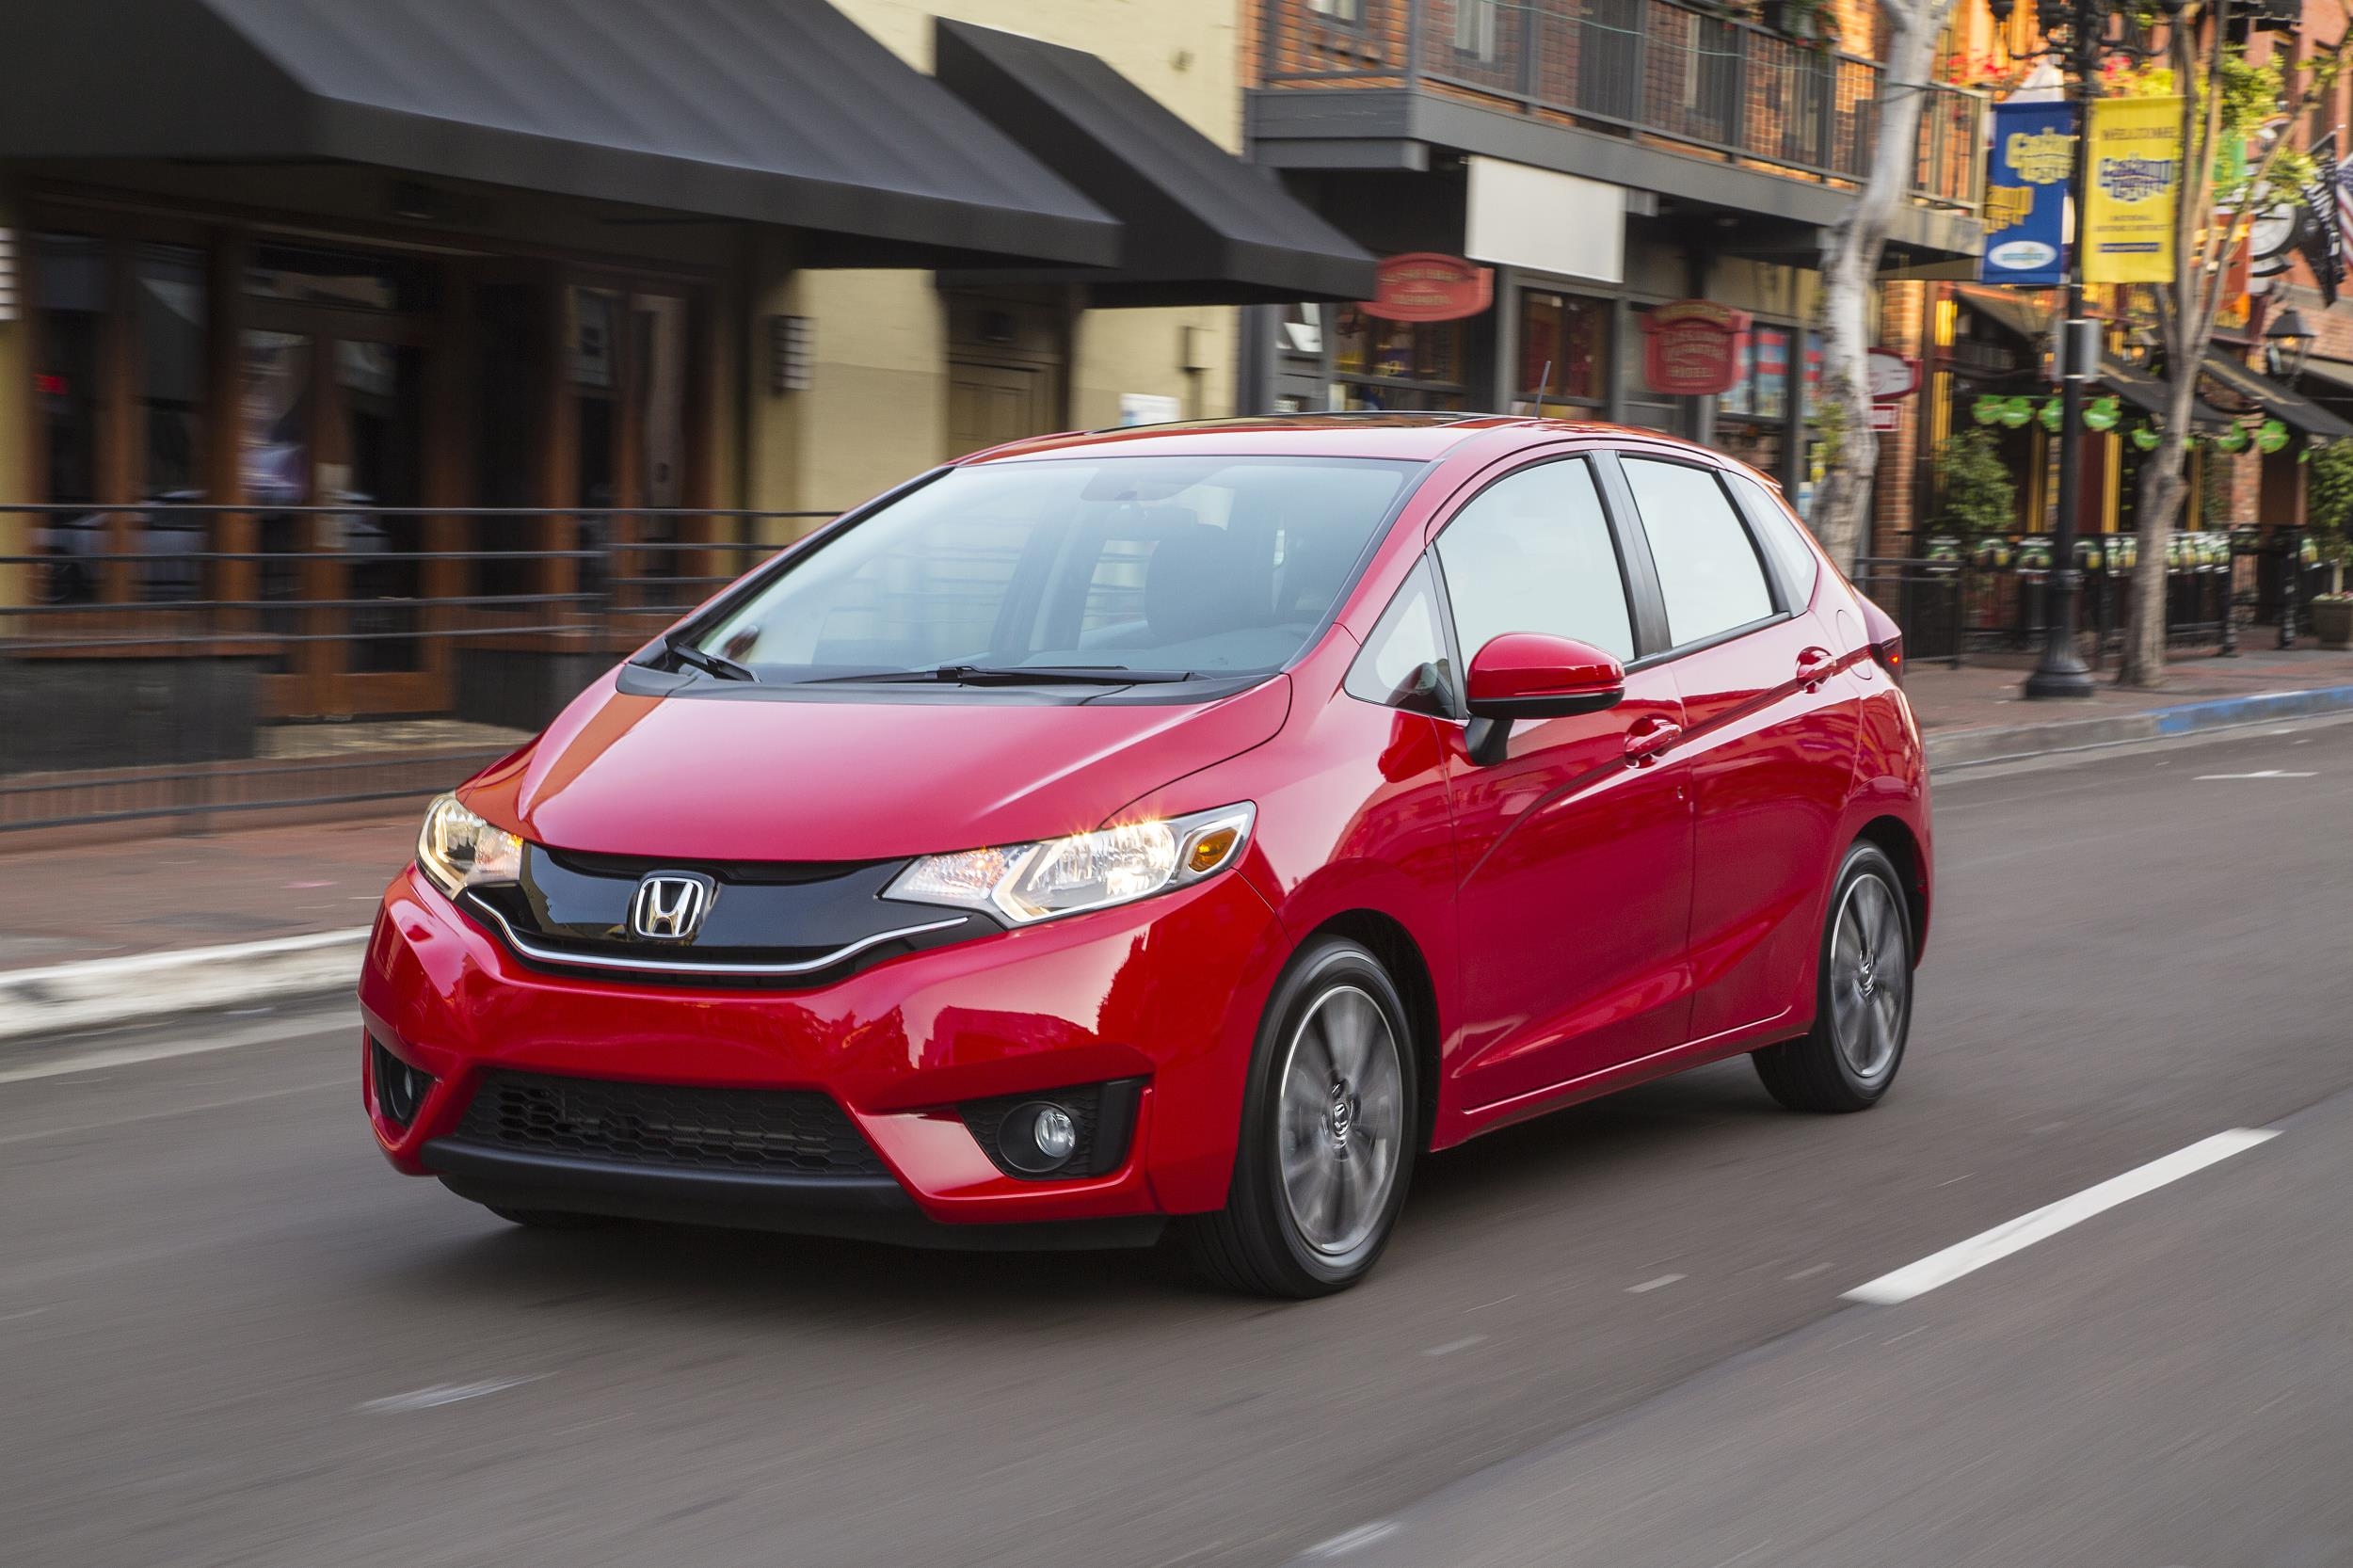 2017 Honda Fit: Product & Performance Overview